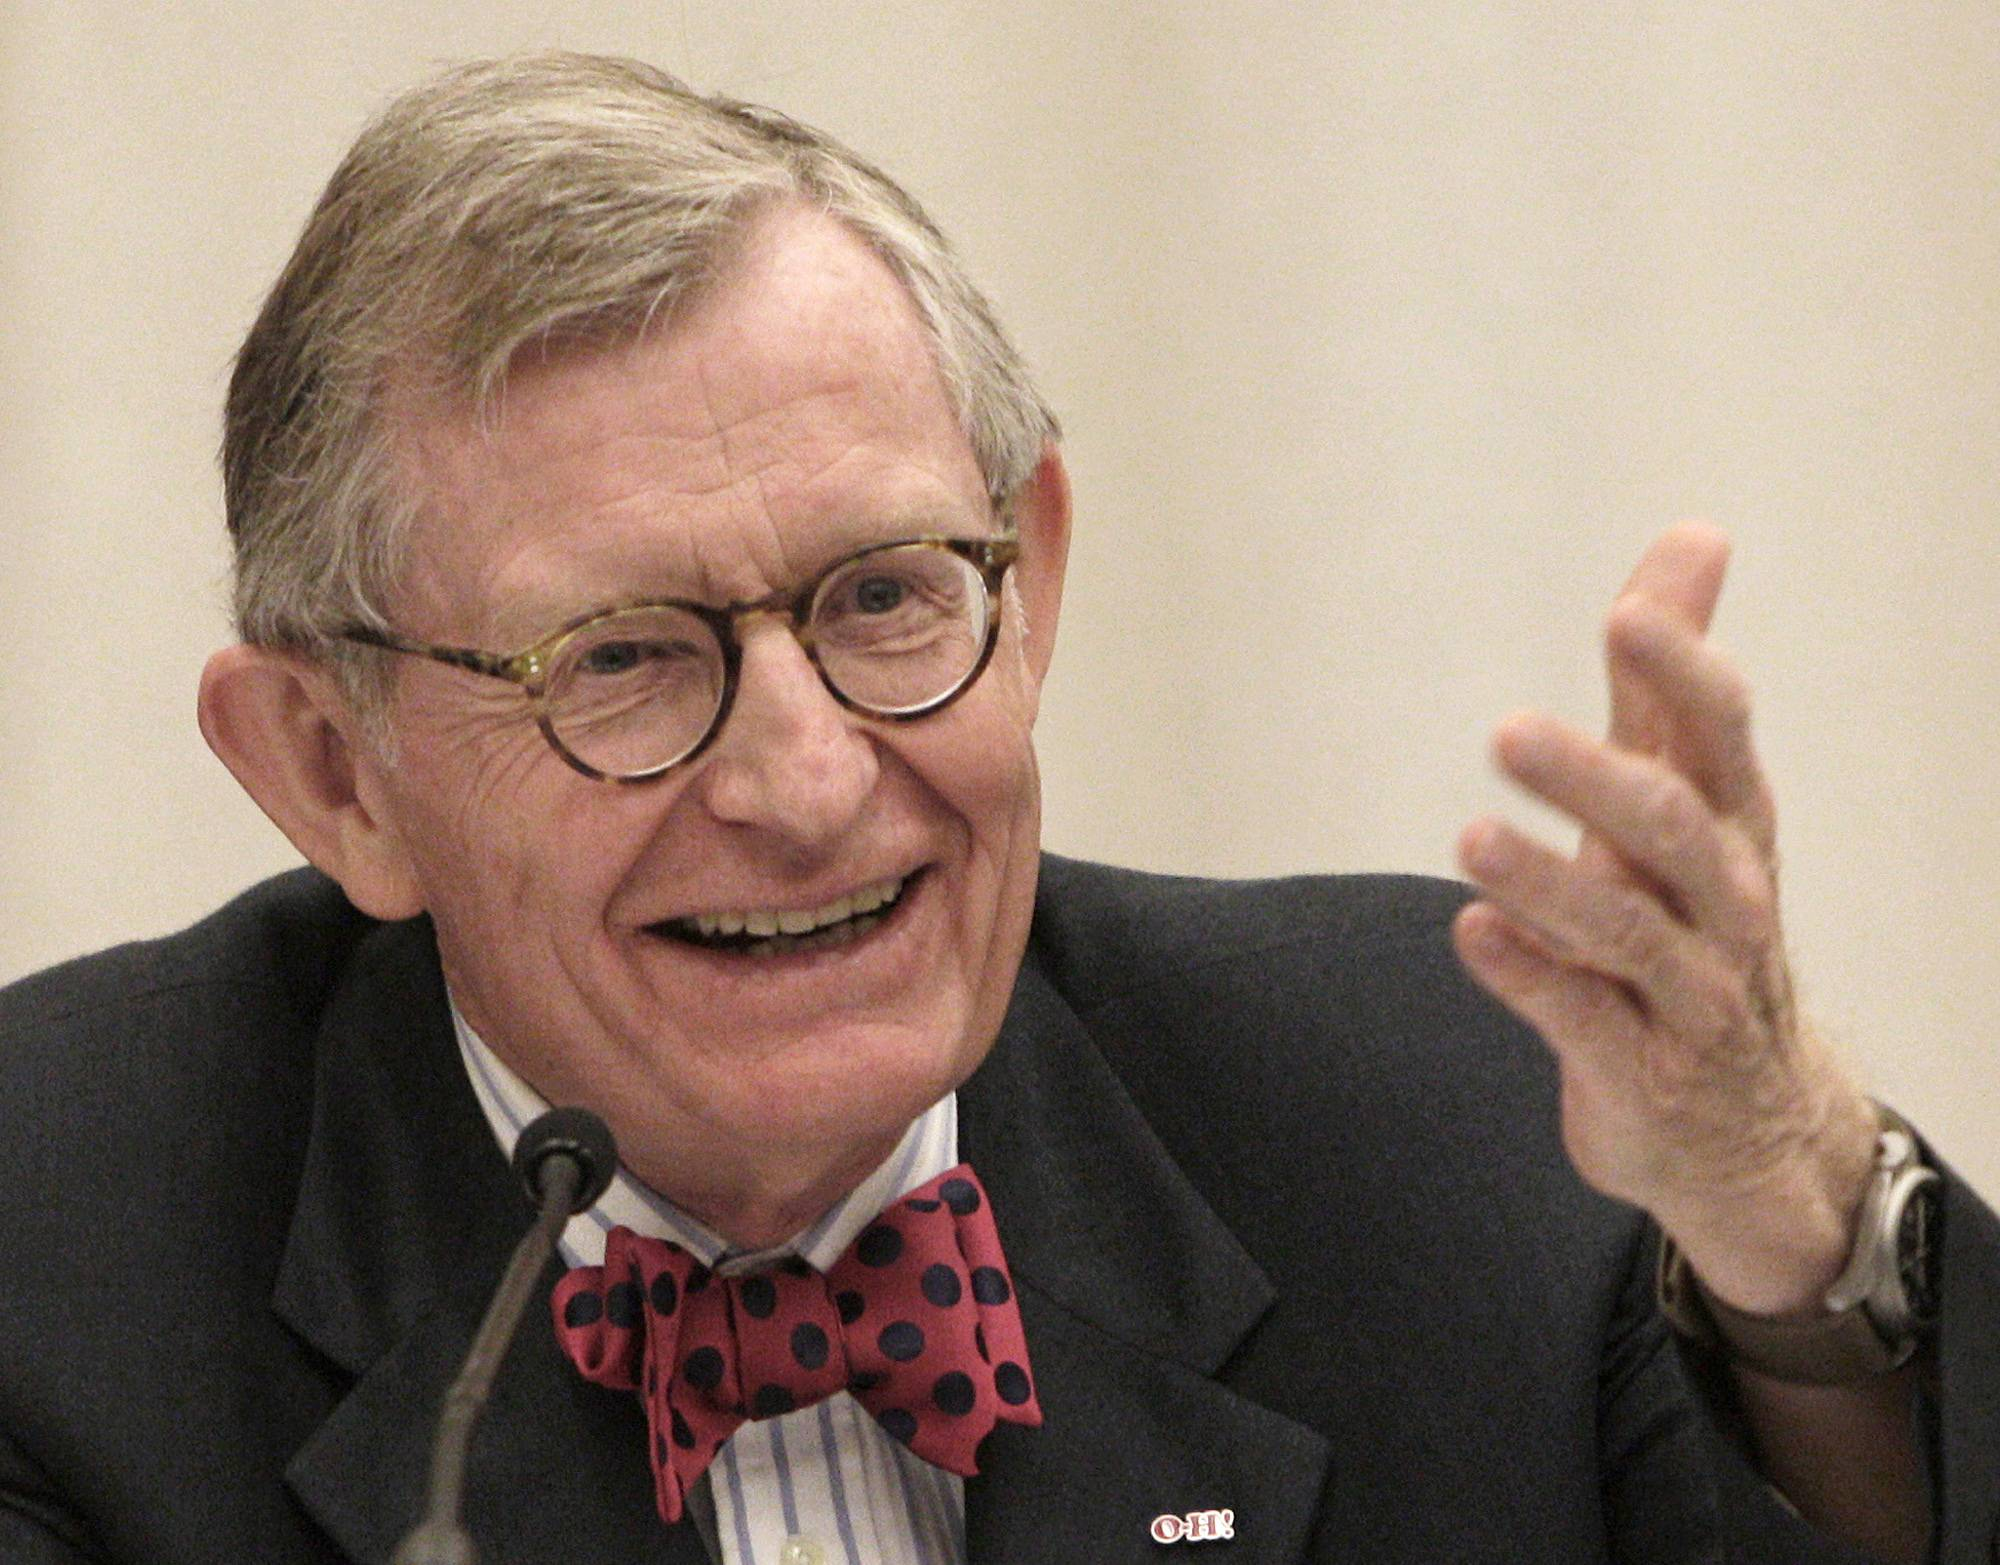 A study found the number of public college presidents earning over $1 million more than doubled in the 2012-2013 fiscal year from the year before. Ohio State University president Gordon Gee topped the list, earning $6.1 million.